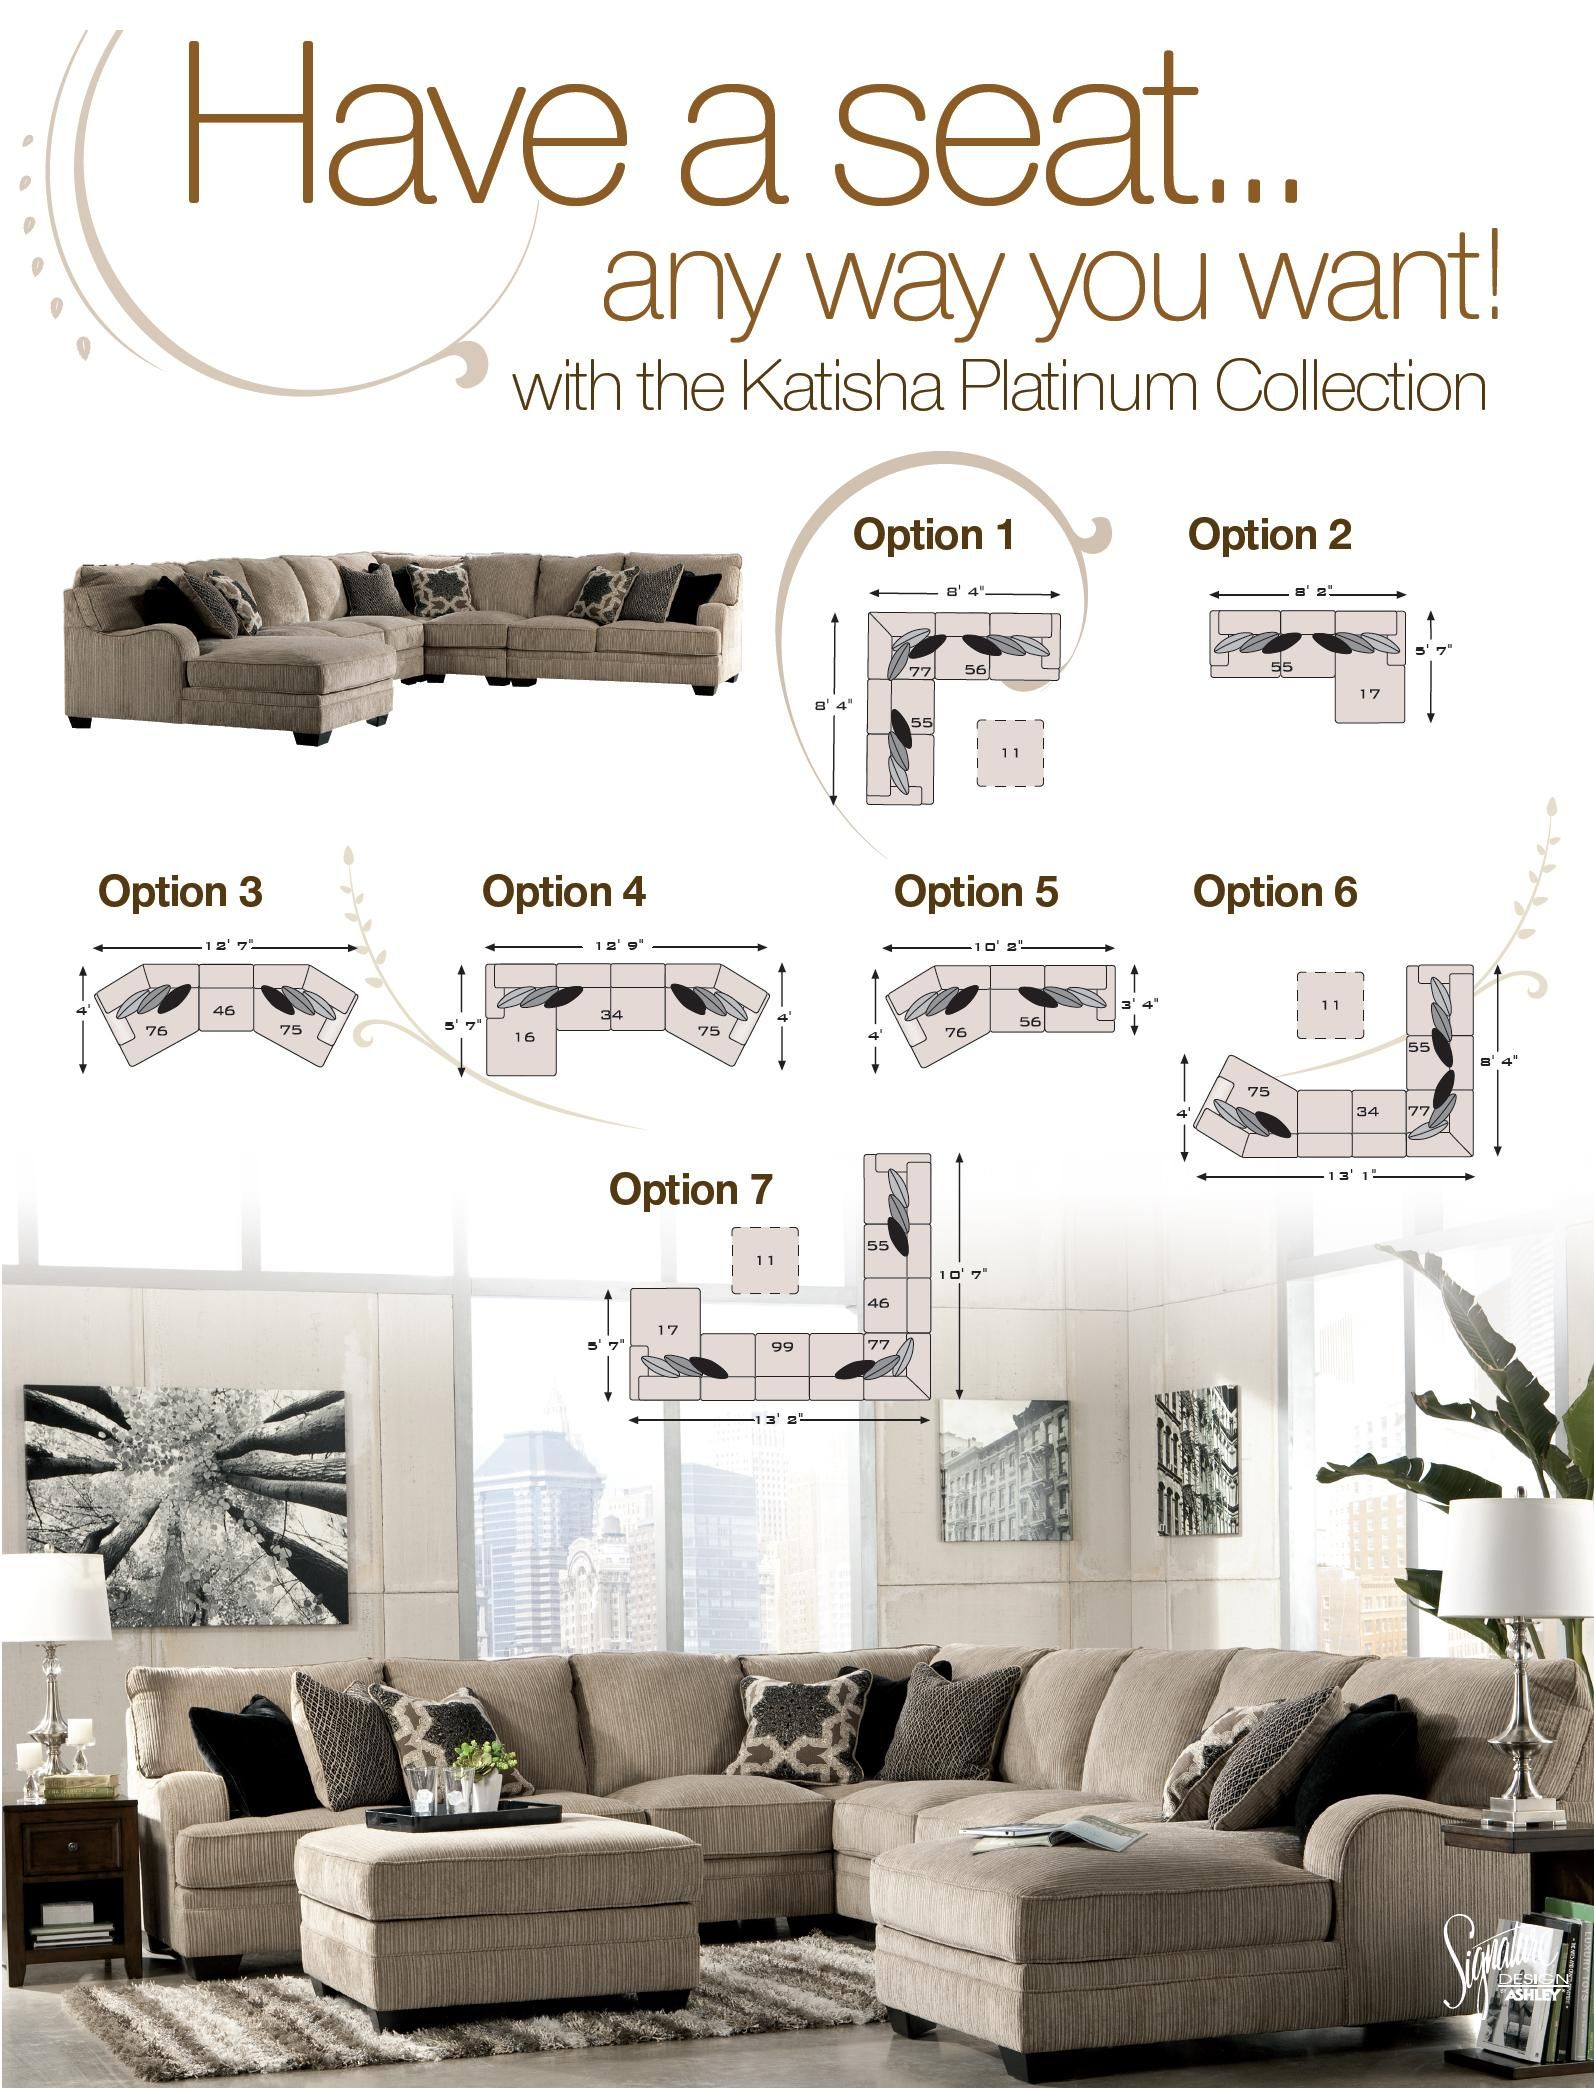 Signature Design by Ashley Katisha Platinum 5Piece Sectional Sofa